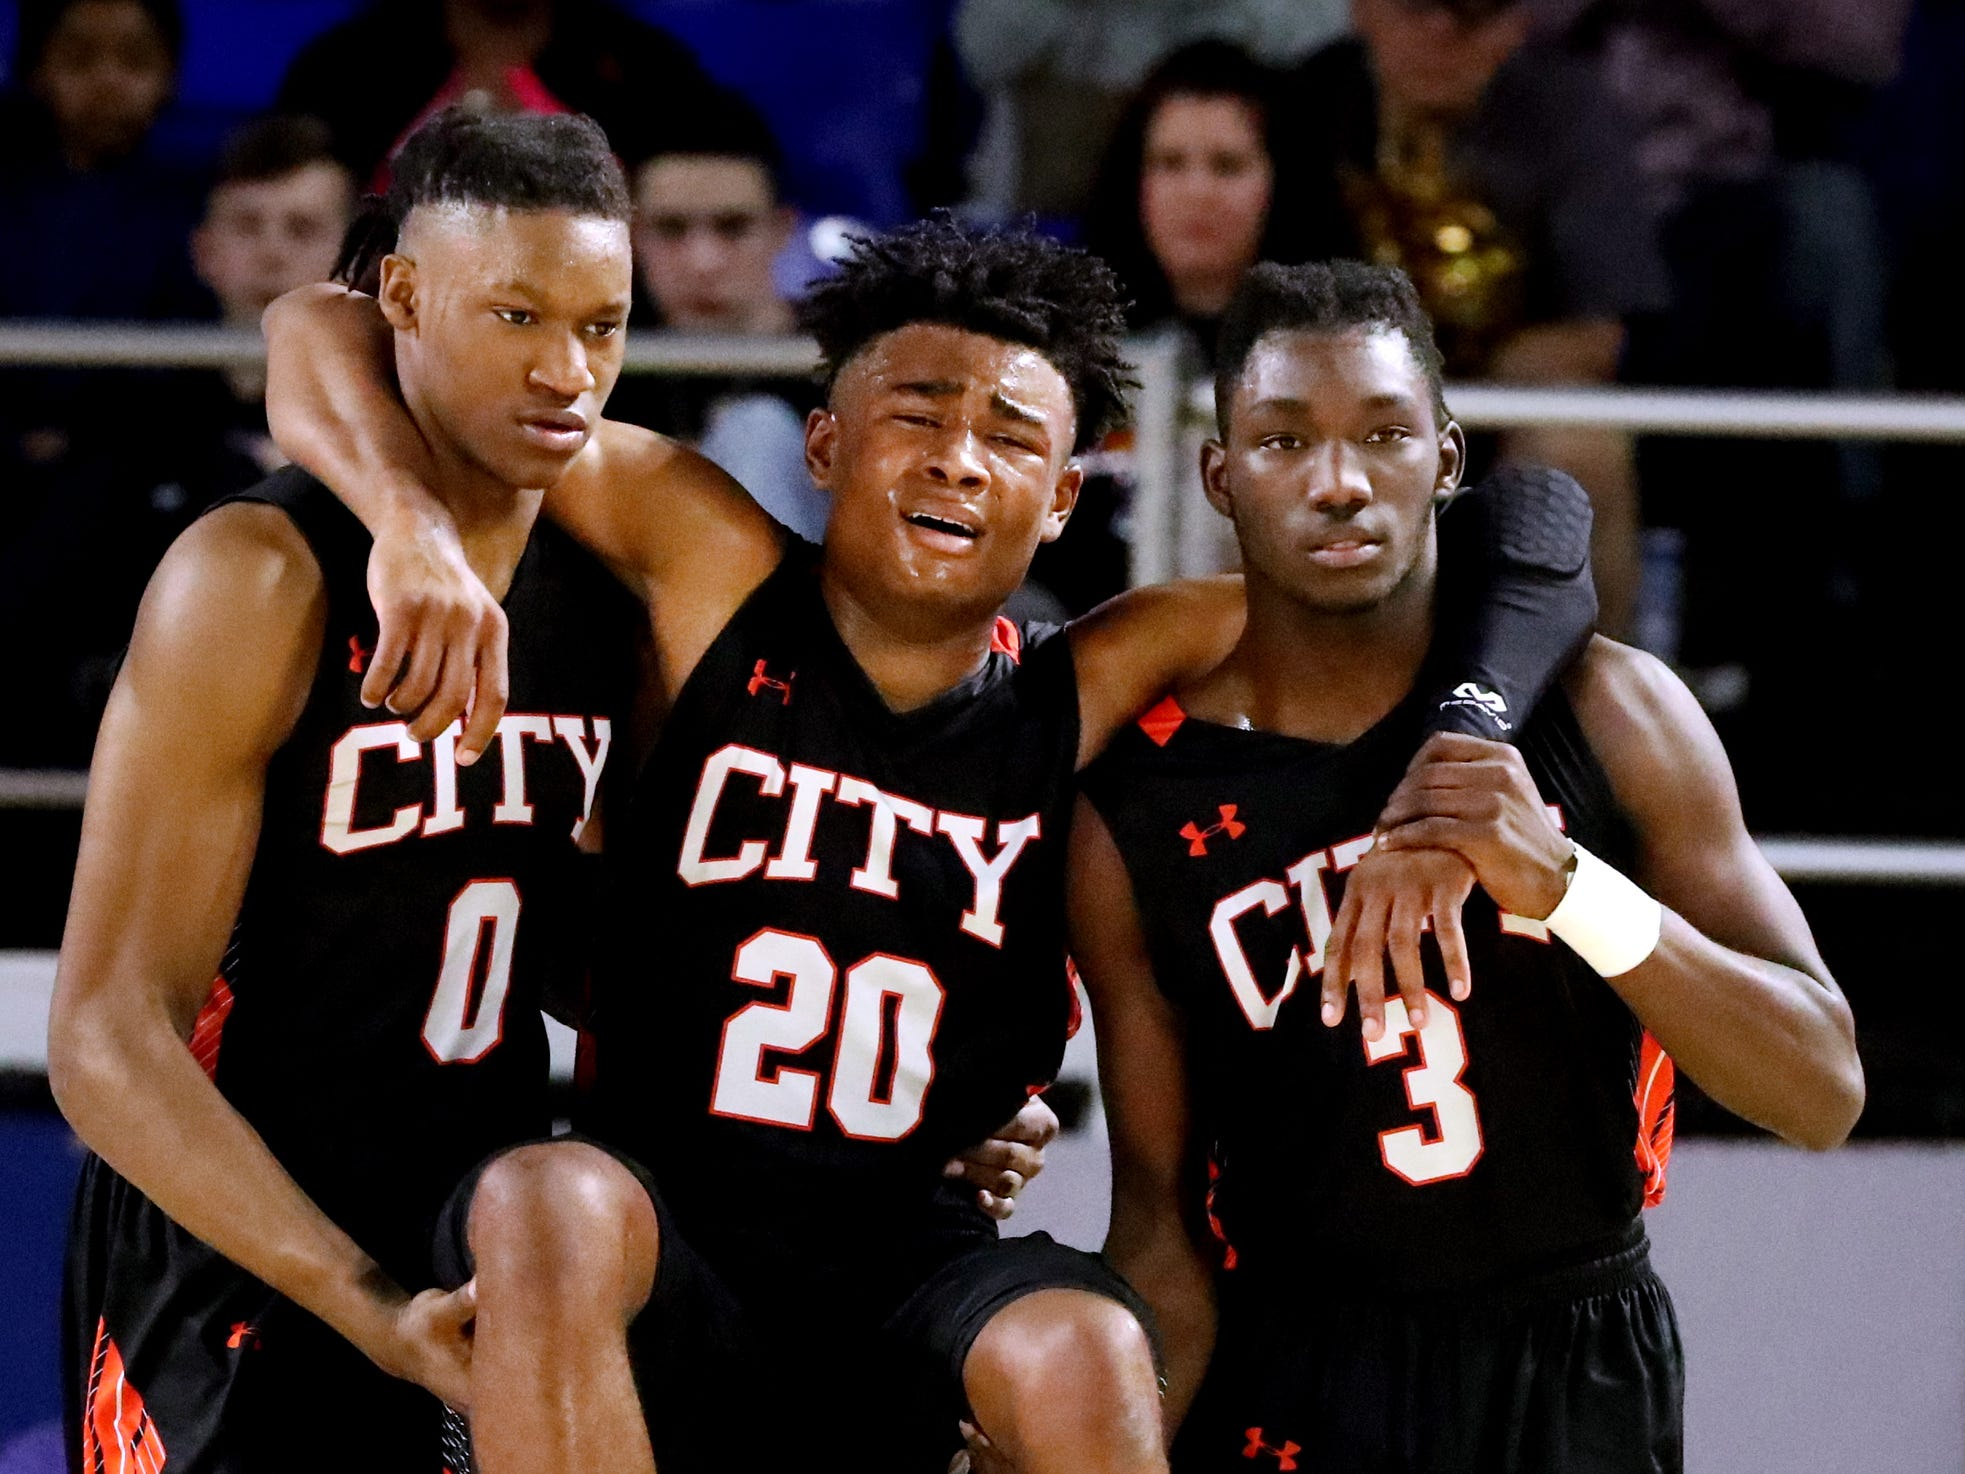 Fayetteville's Julius Dixon (0) and Jacious Clark (3) carry teammate Floyd Williams (20) off the court after he was injured in the first half of  the quarterfinal round of the TSSAA Class A Boys State Tournament, on Thursday, March 14, 2019, at Murphy Center in Murfreesboro, Tenn